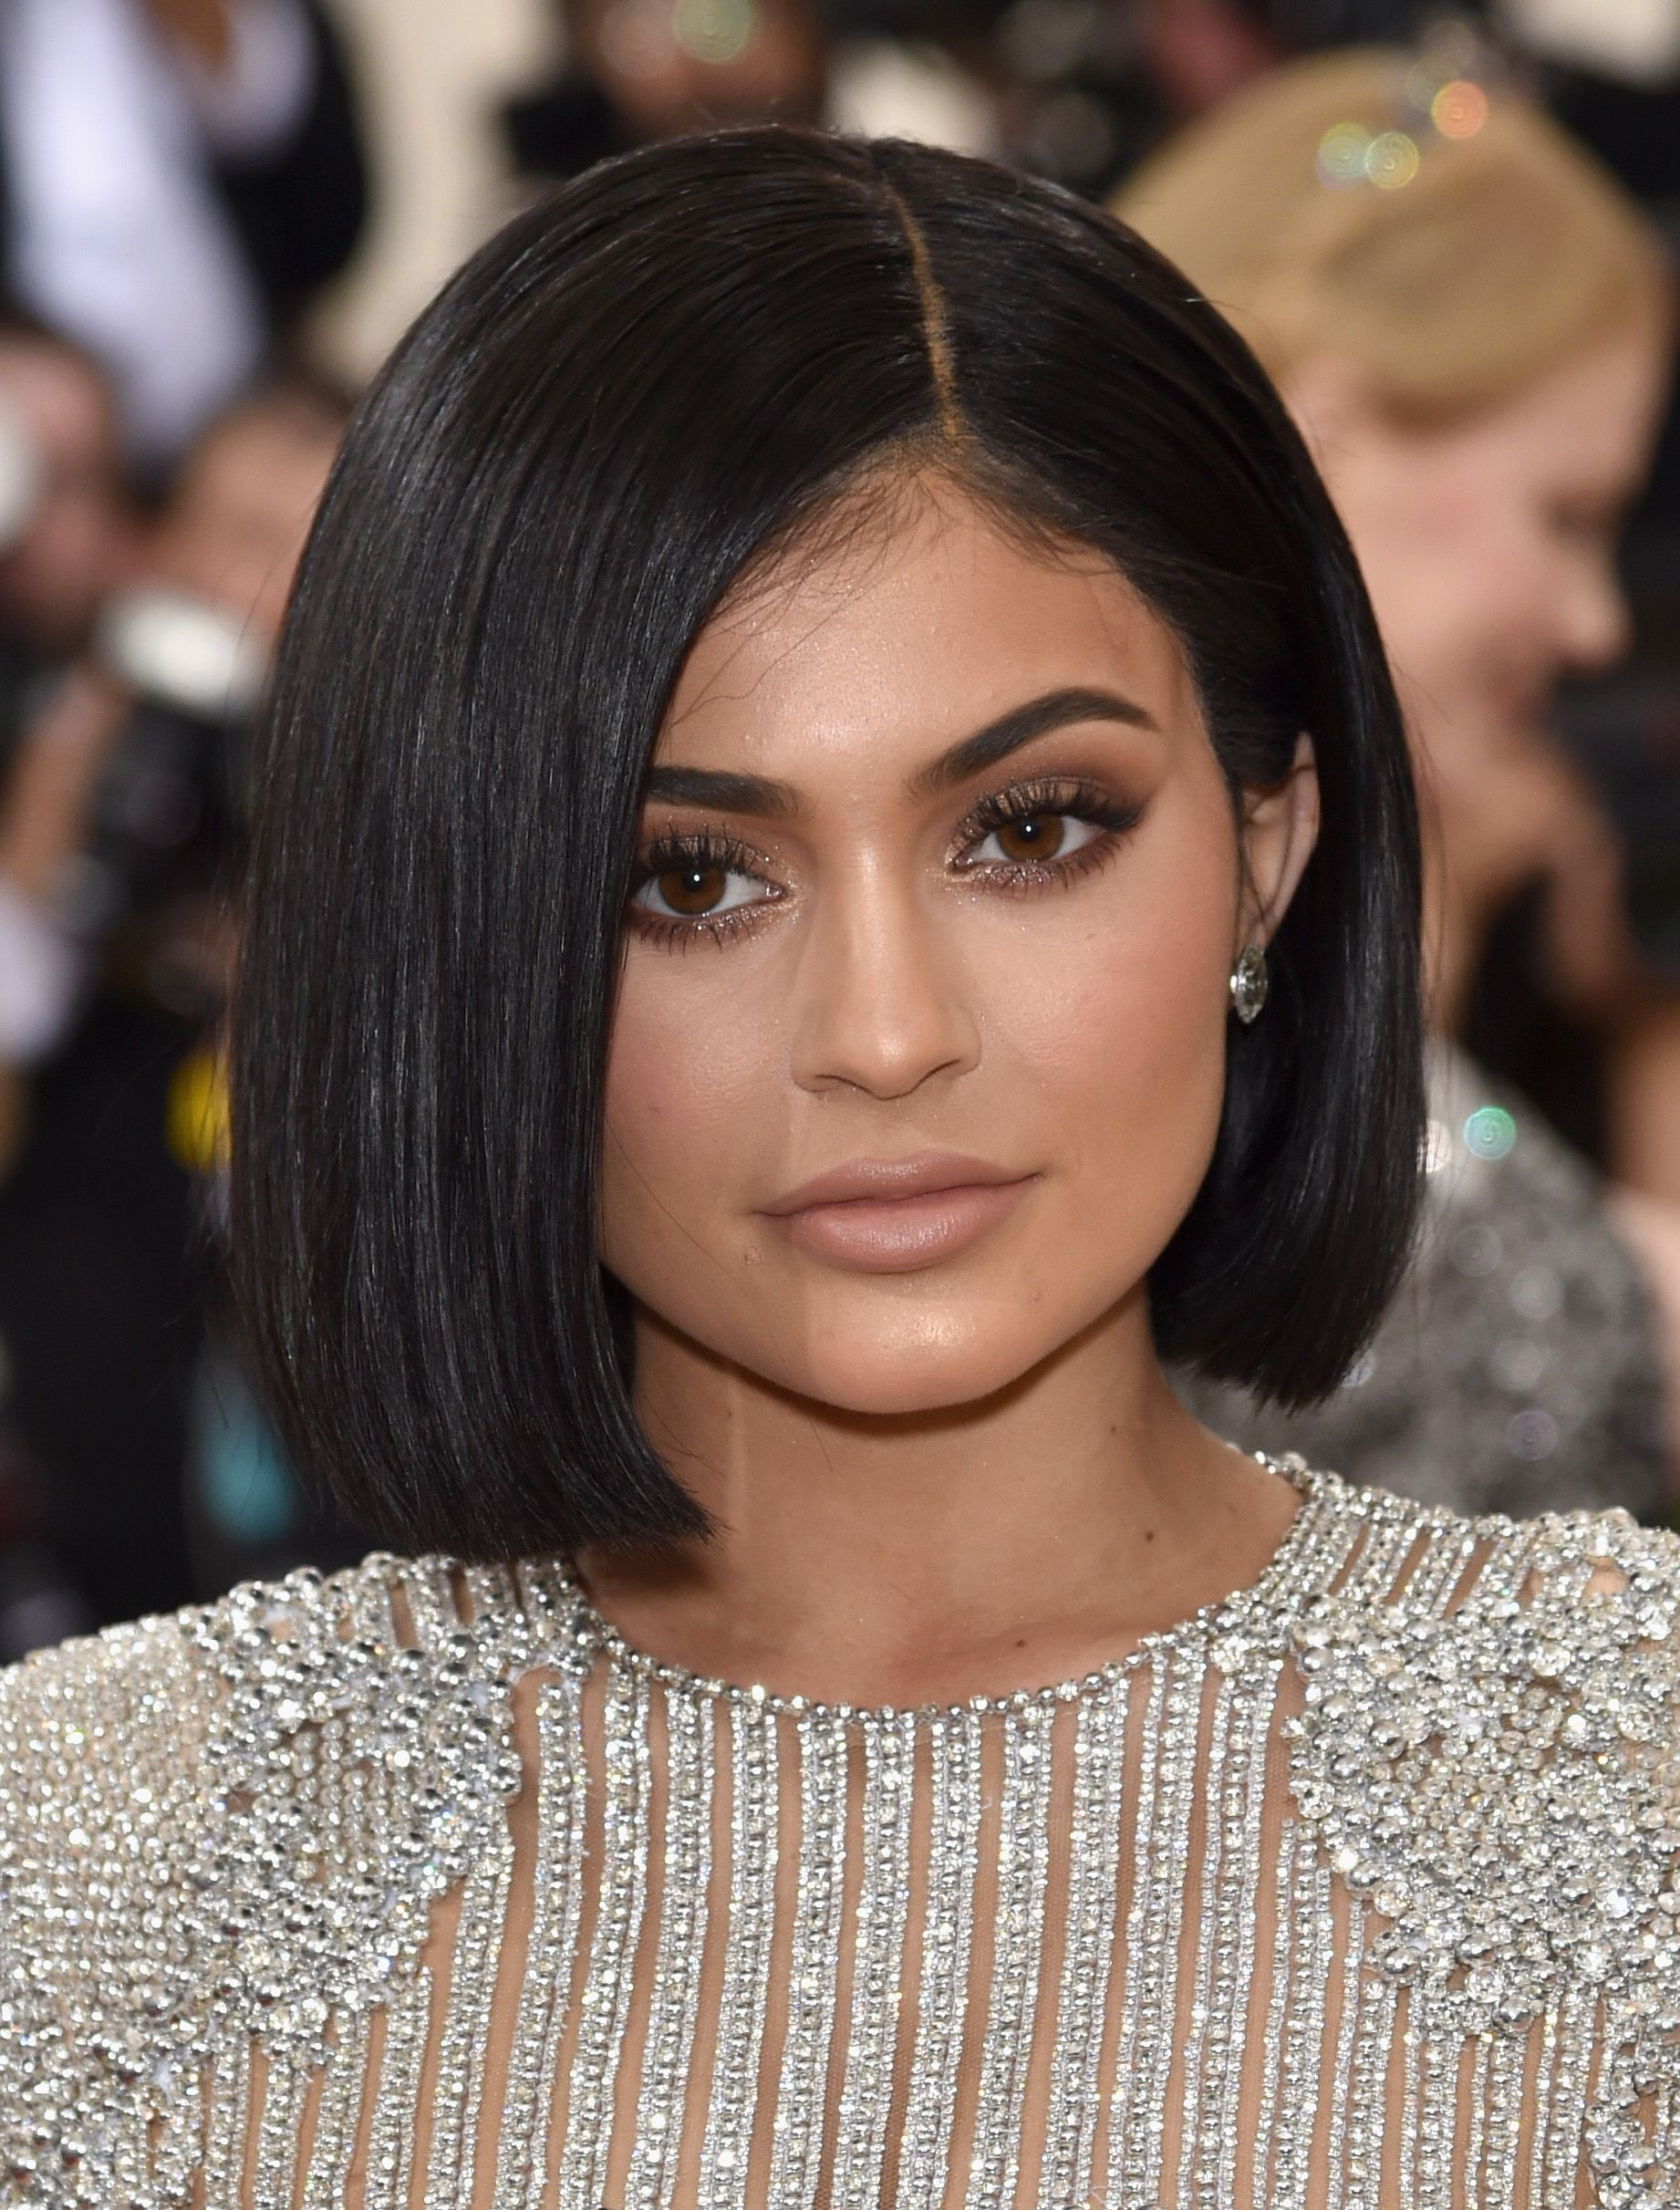 The 65 Best Short Hairstyles and Haircuts to Try Now